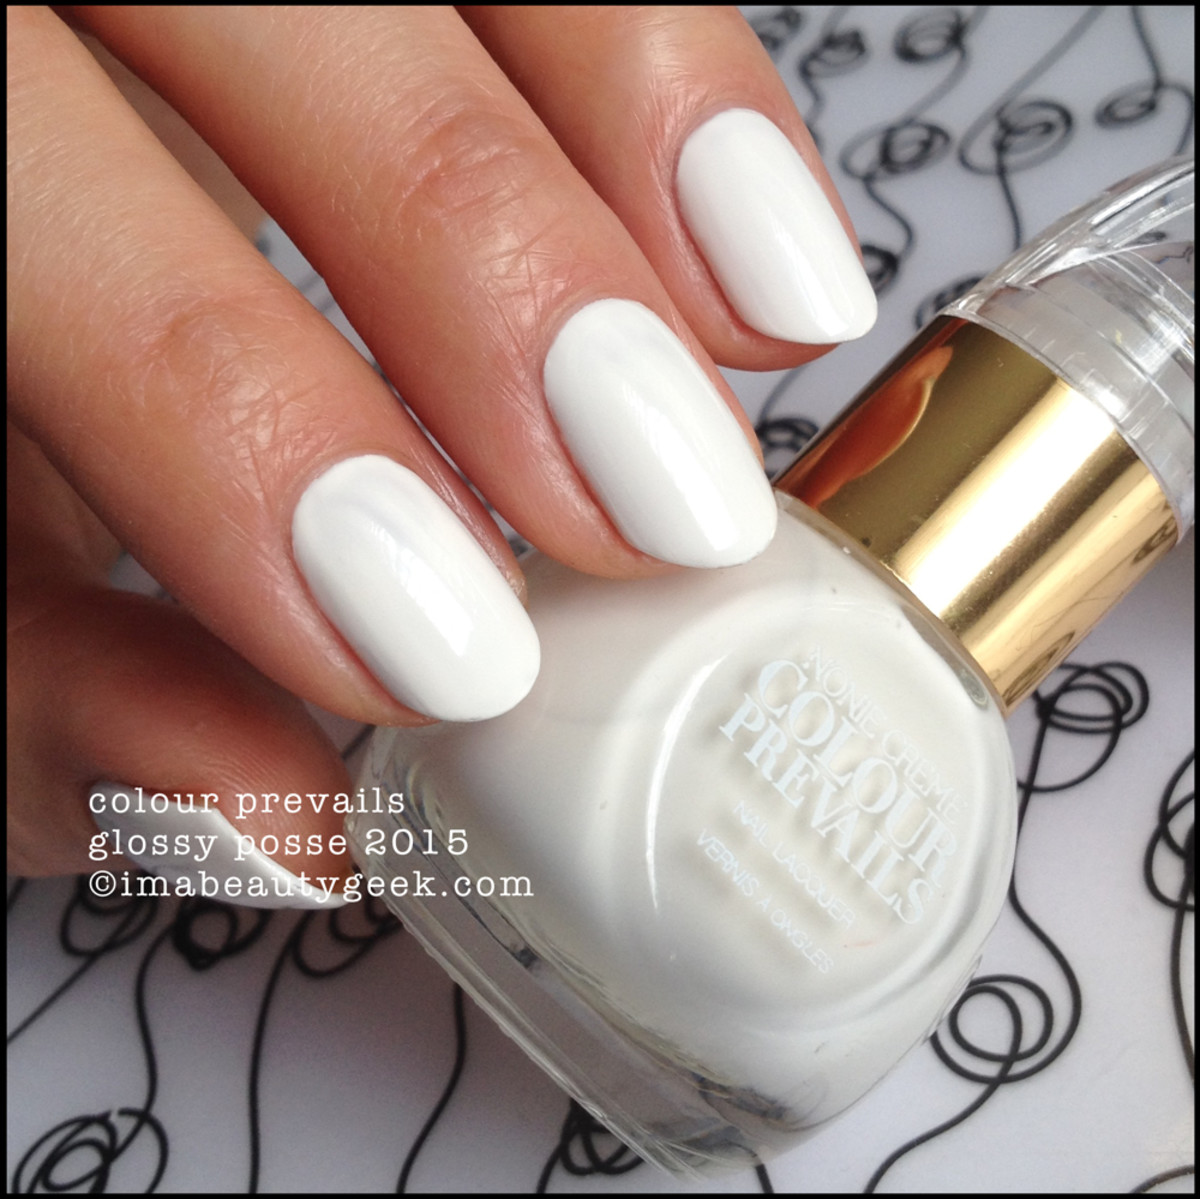 Colour Prevails Glossy Posse Nail Polish by Nonie Creme